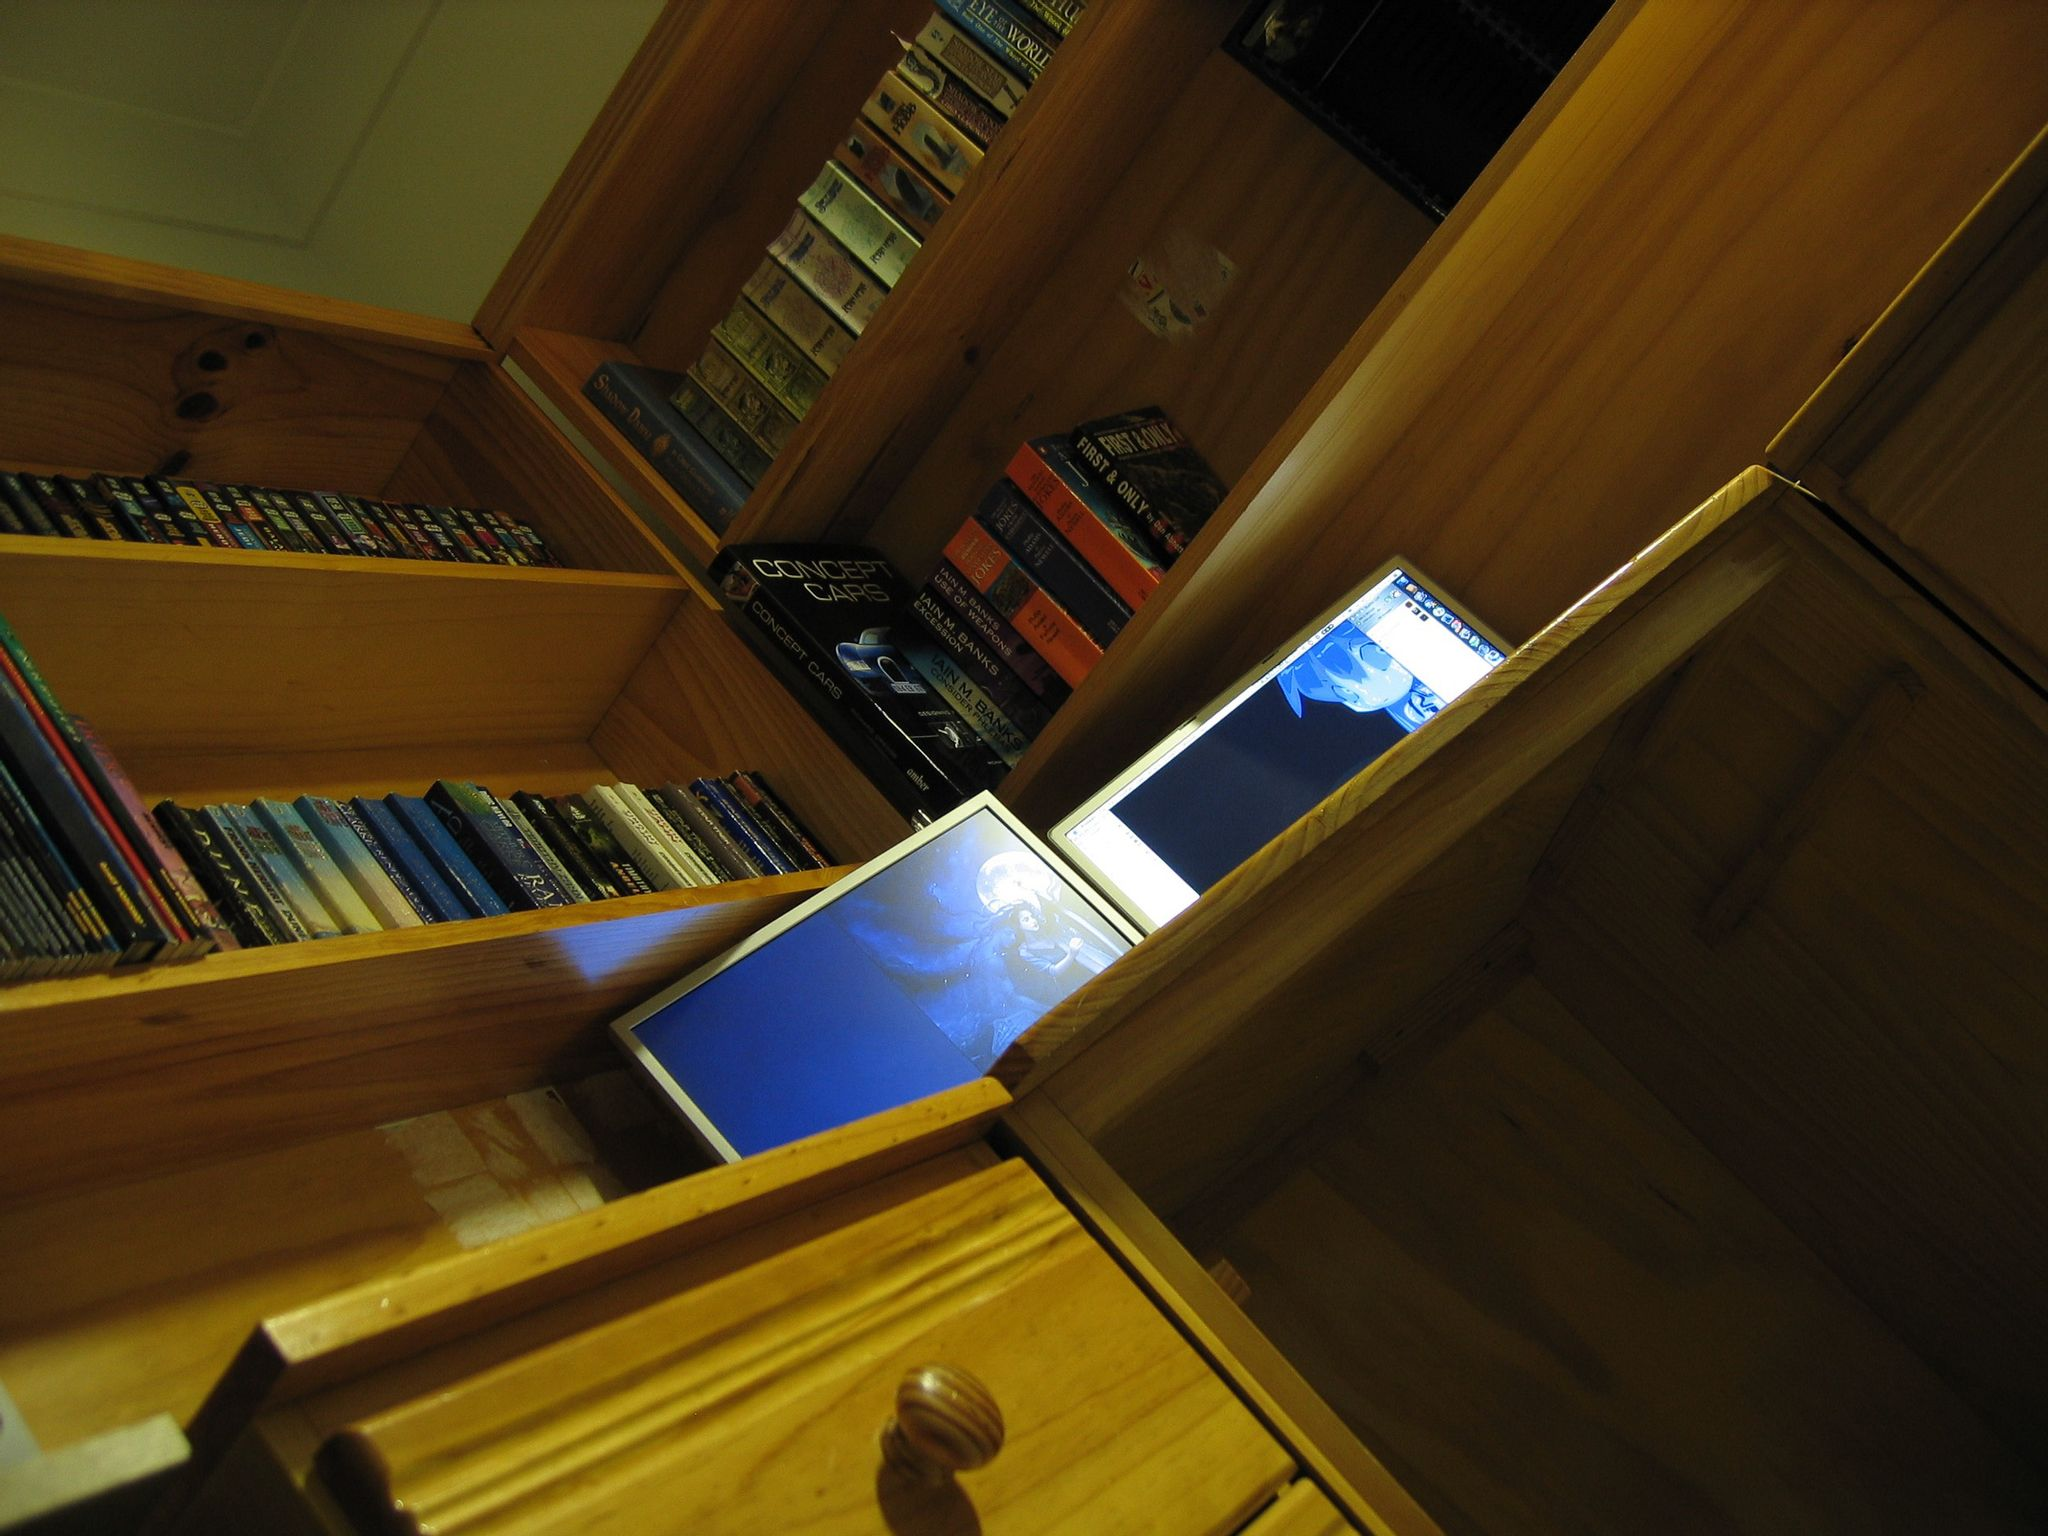 "A photo taken from nearly floor level and at an angle looking up at a corner desk. On the desk are bookshelves filled with books, and just visible on the desk itself is the top of a 17"" PowerBook G4 and a 17"" 4:3 display to the left of it."